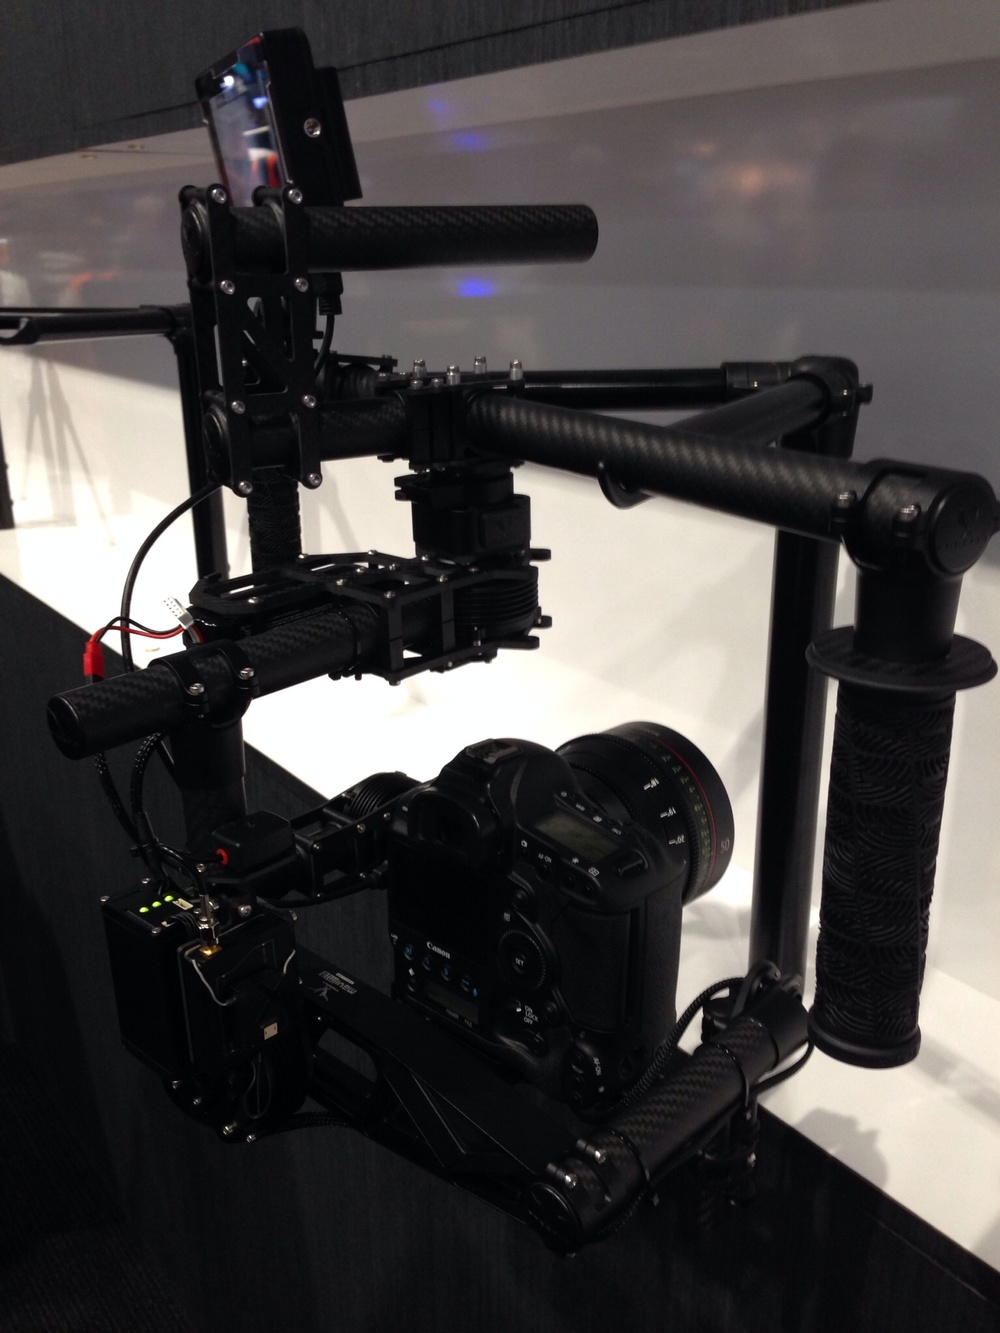 The MoVI M5 from Freefly Systems